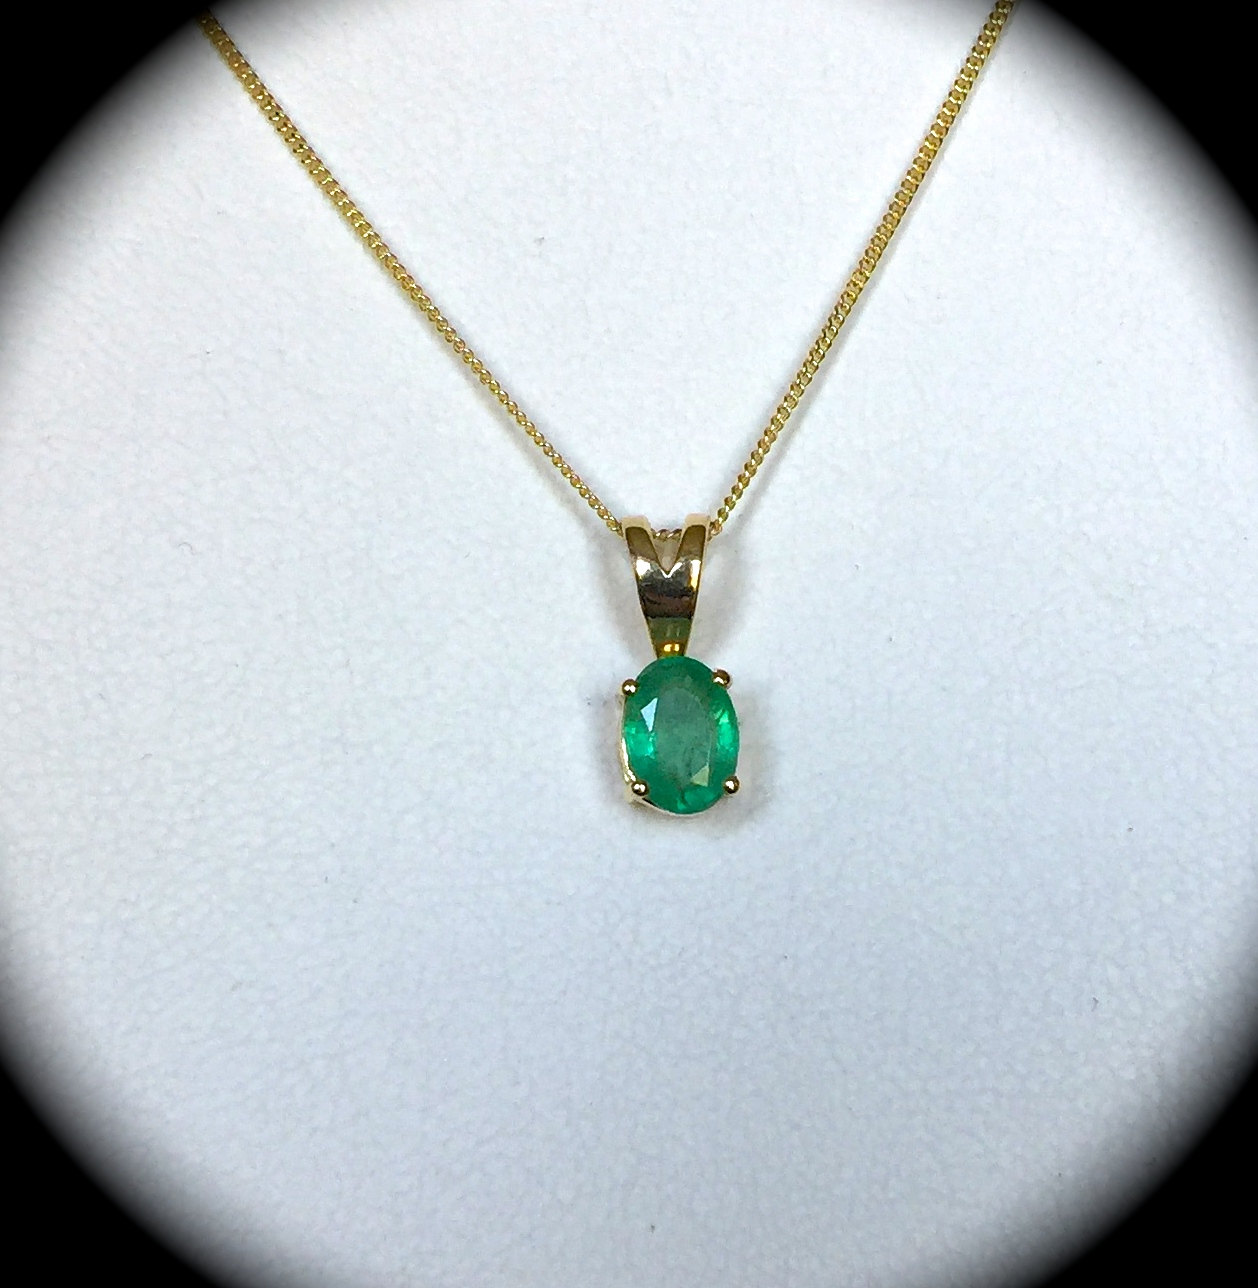 diamond natural en necklace kay white pendant and gold journey kaystore zm emerald mv